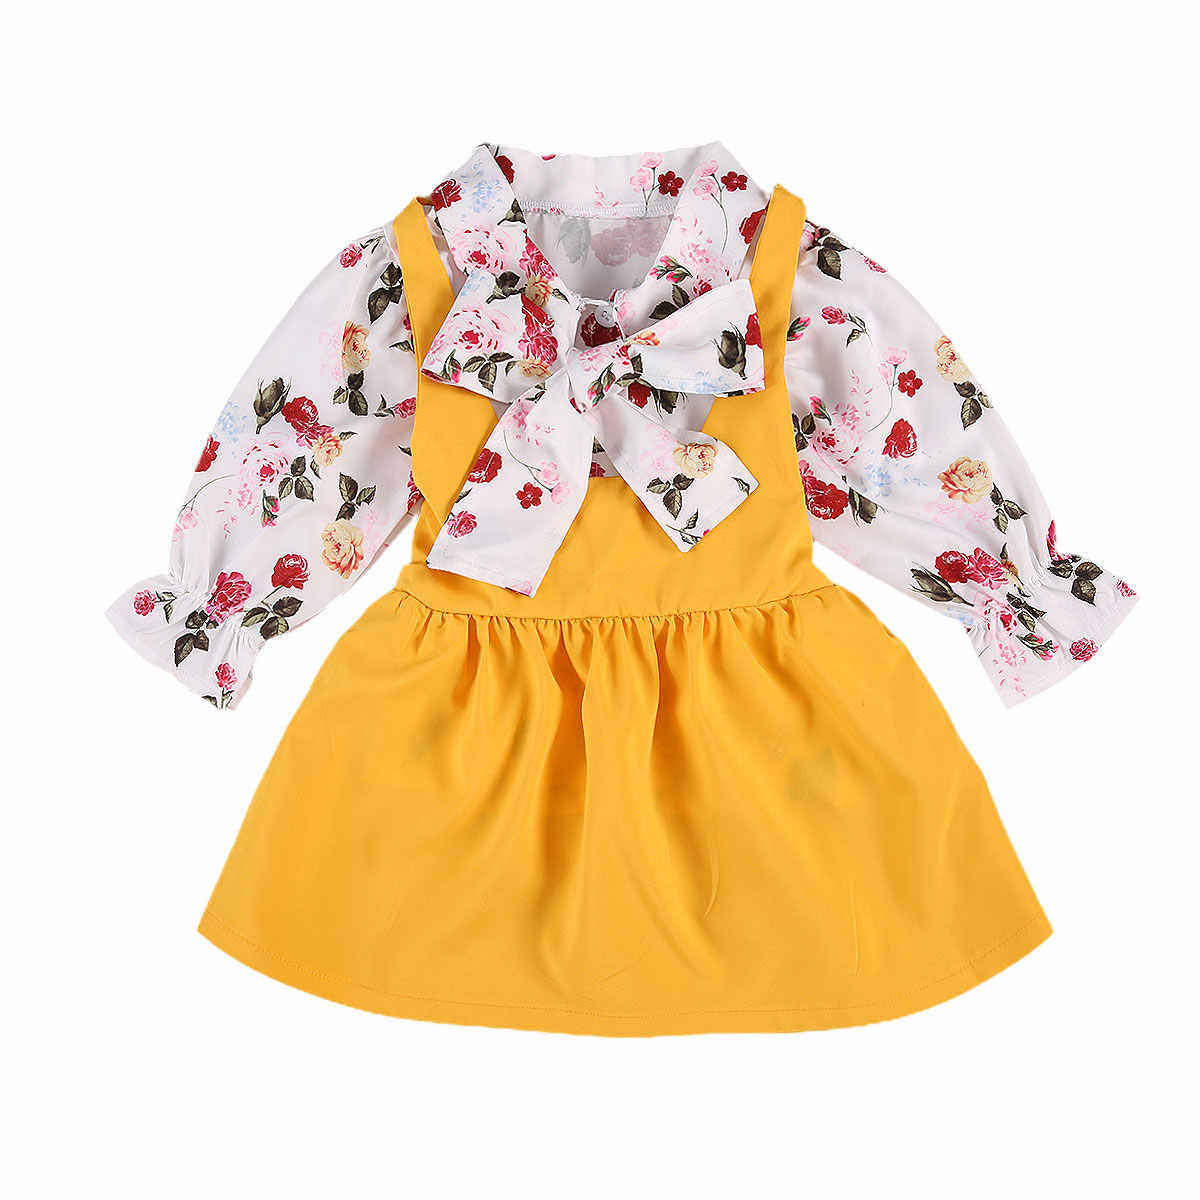 FOCUSNORM 0-5Y Autumn Lovely Baby Girls Clothes Sets Flowers Print Long Sleeve Single Breasted Bow Shirts Tops Bib Strap Dress